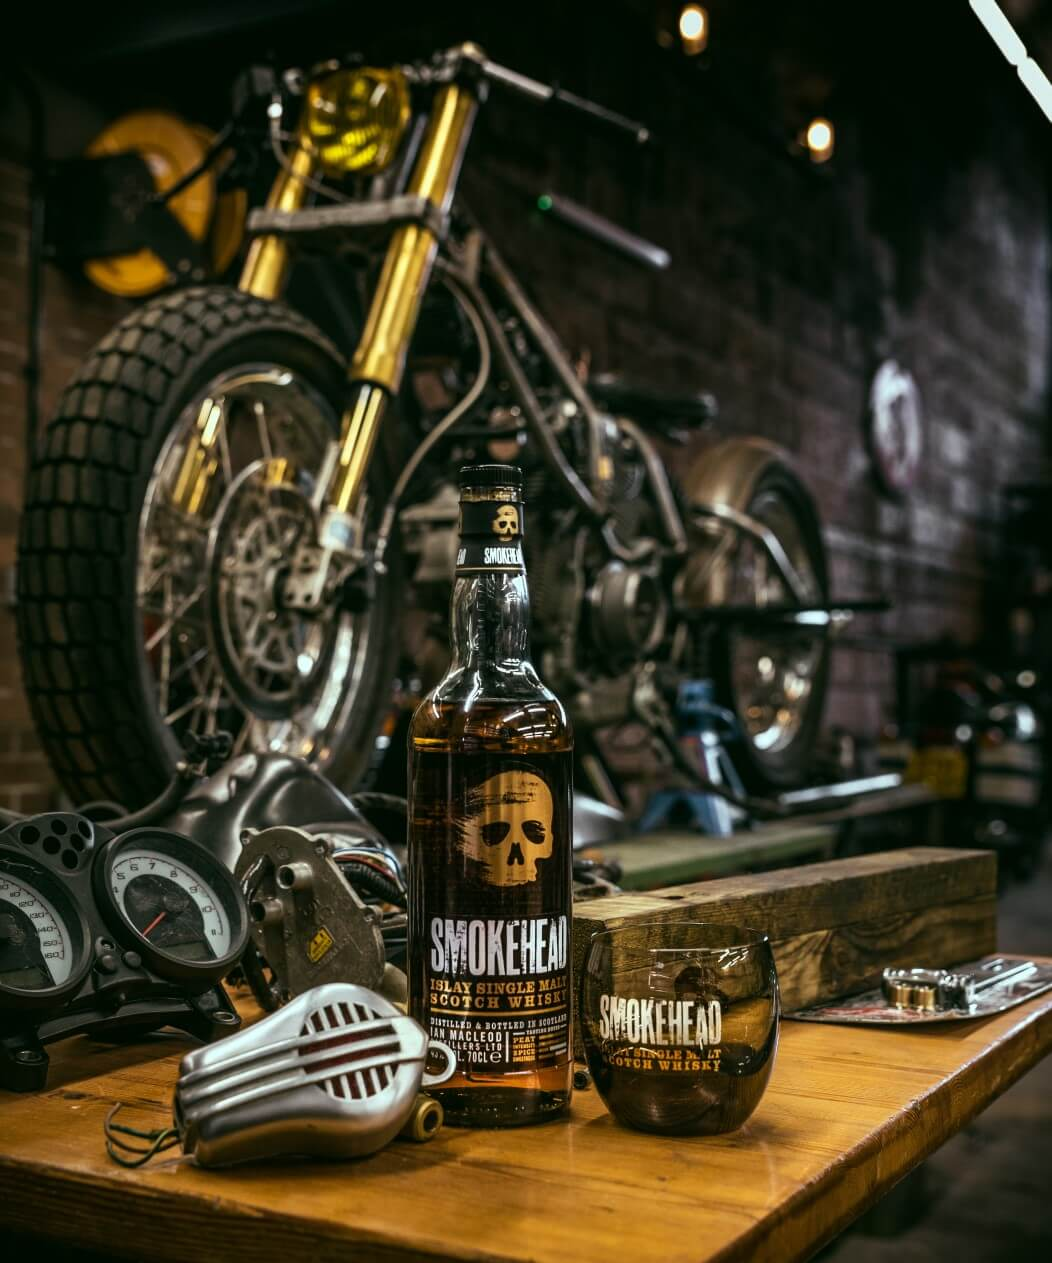 A bottle of Smokehead in Tyler's workshop, with The Smoker under construction. Photo by Christopher Coates.